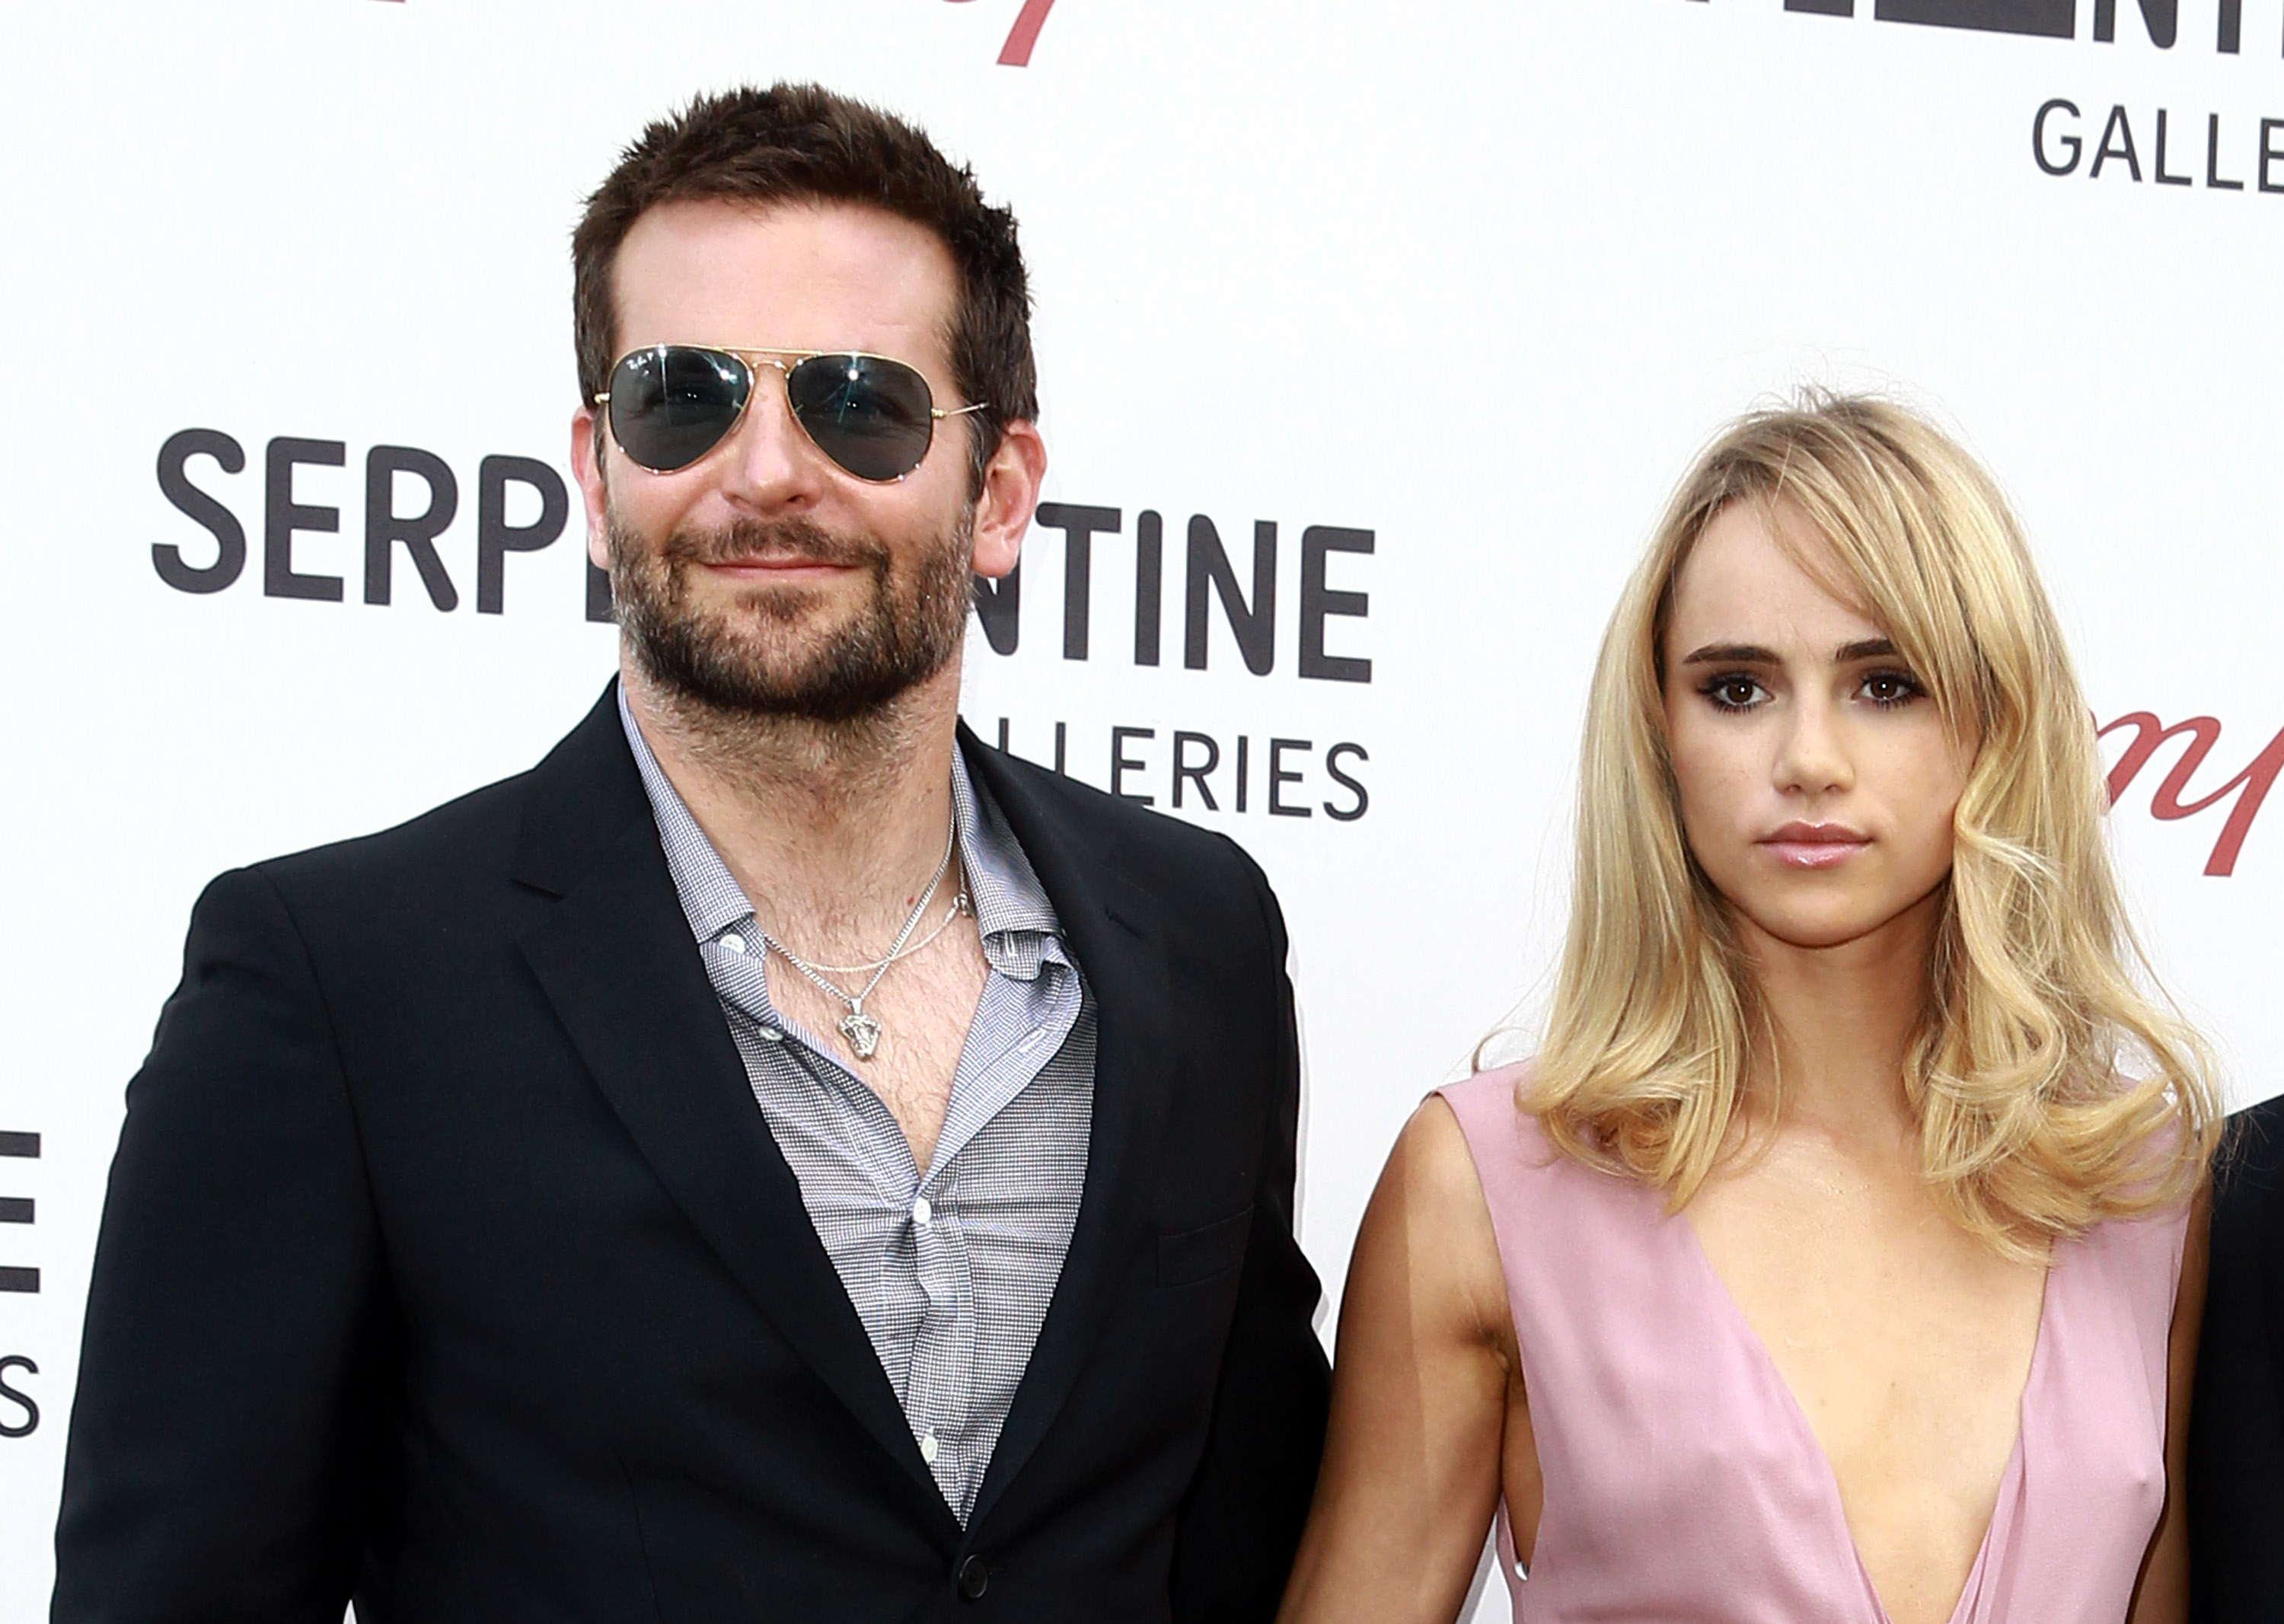 Bradley Cooper and Suki Waterhouse summer party on July 1, 2014 in London, England.